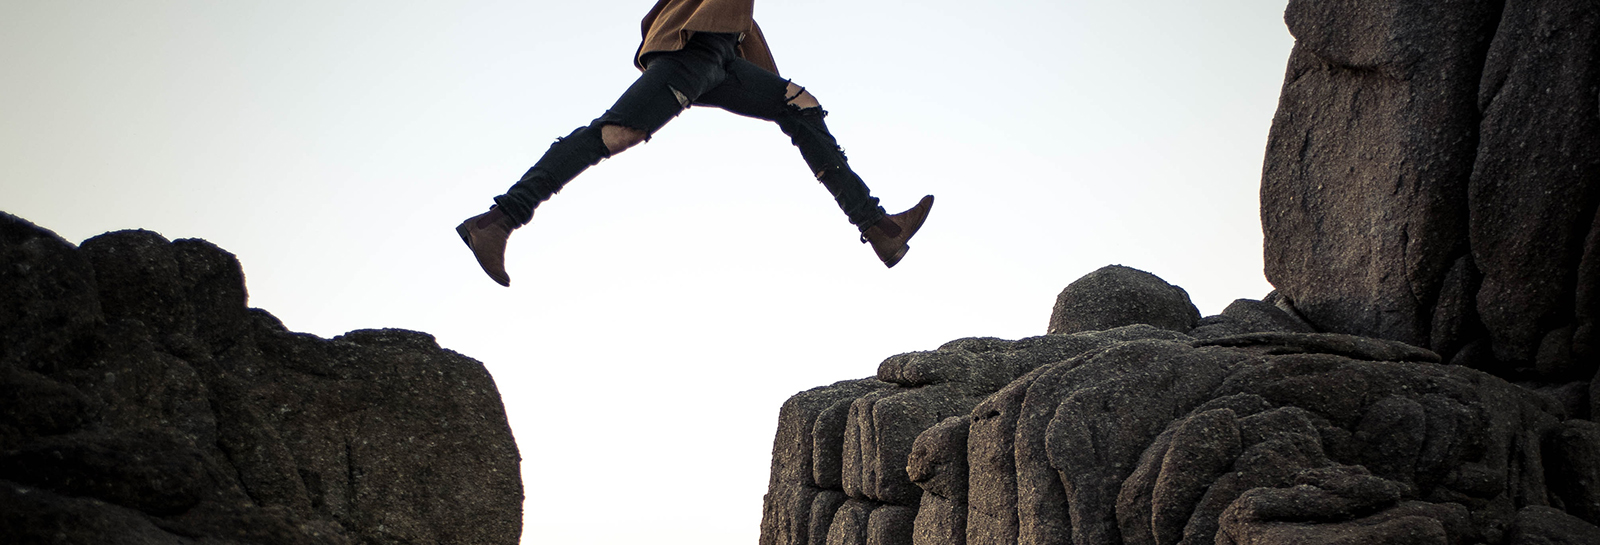 a person jumping over a small fissure